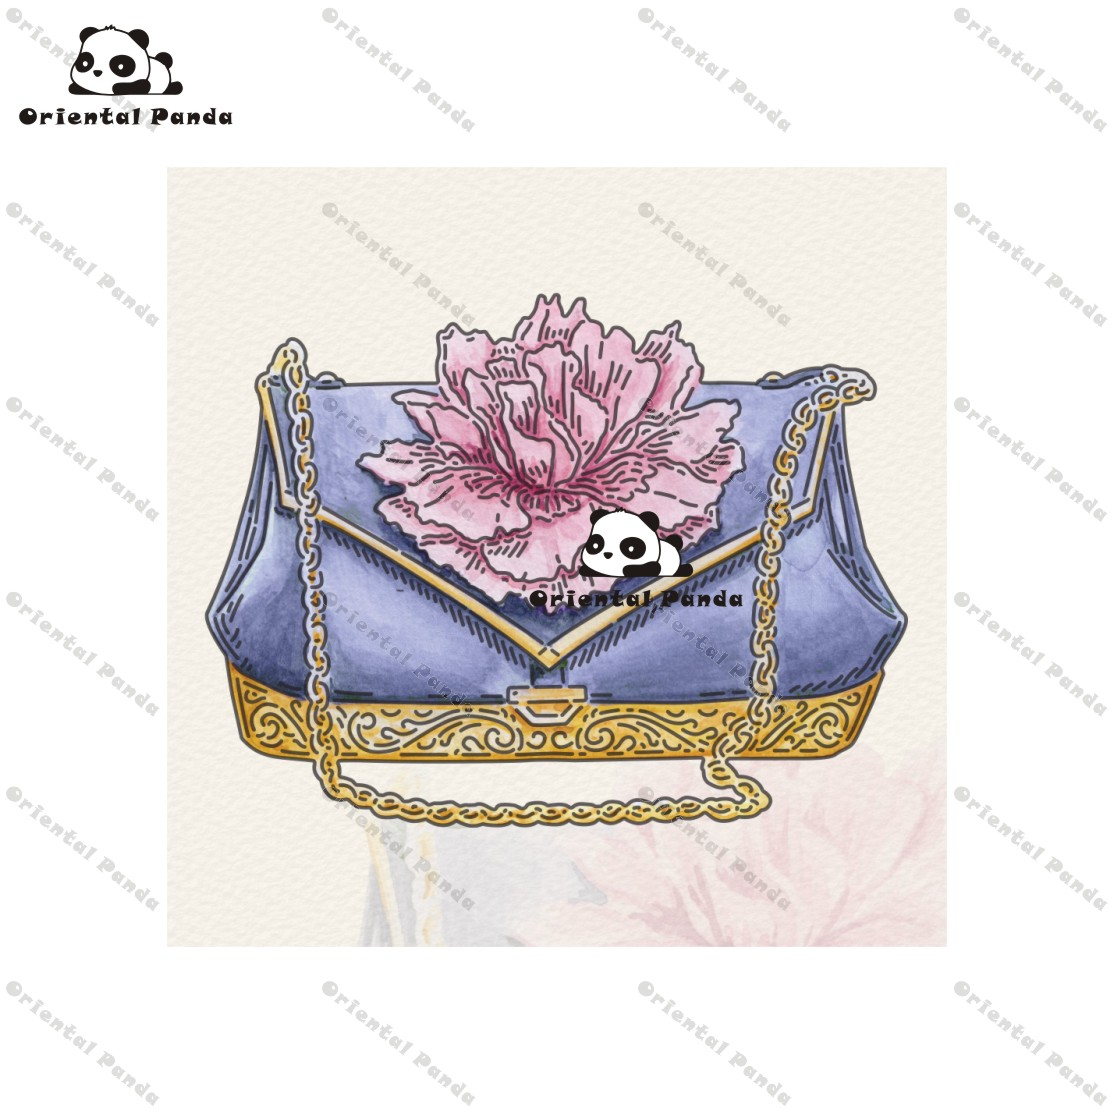 New Dies 2020 Carnation Handbag Metal Cutting Dies Diy Dies Photo Album  Cutting Dies Scrapbooking Stencil Die Cuts Card Making